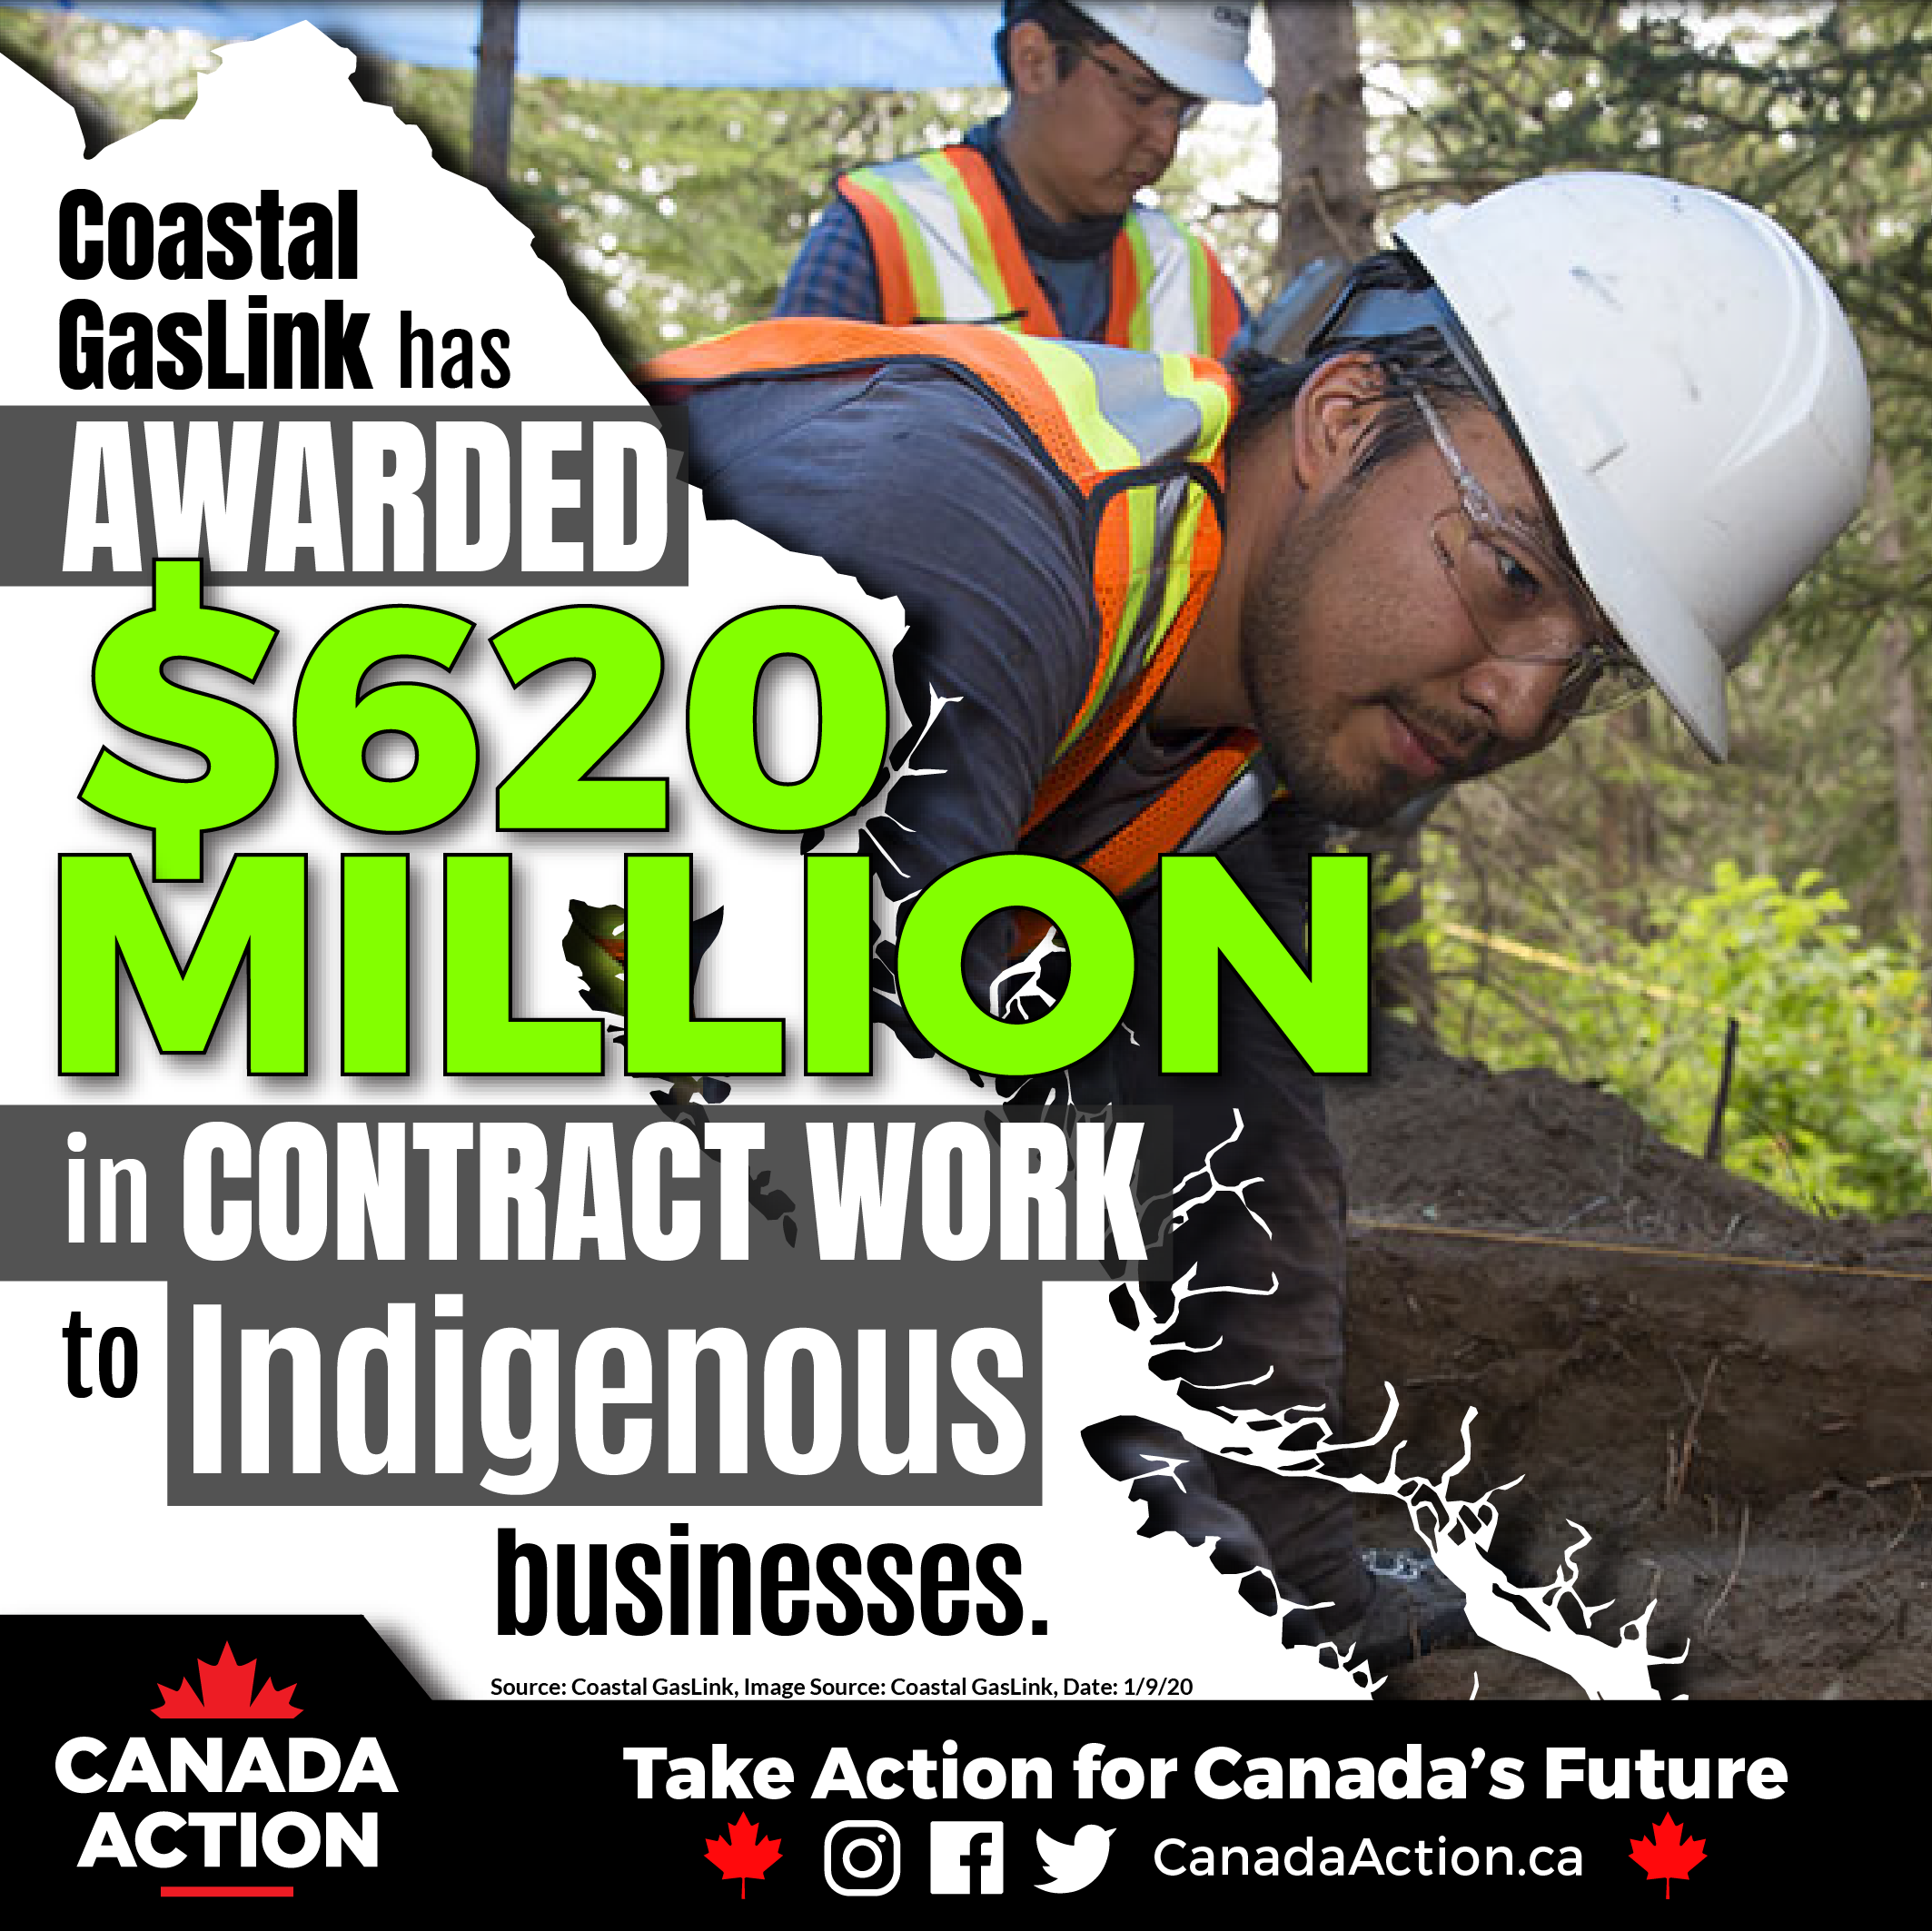 Coastal GasLink Pipeline Project $620 Million to Indigenous Businesses